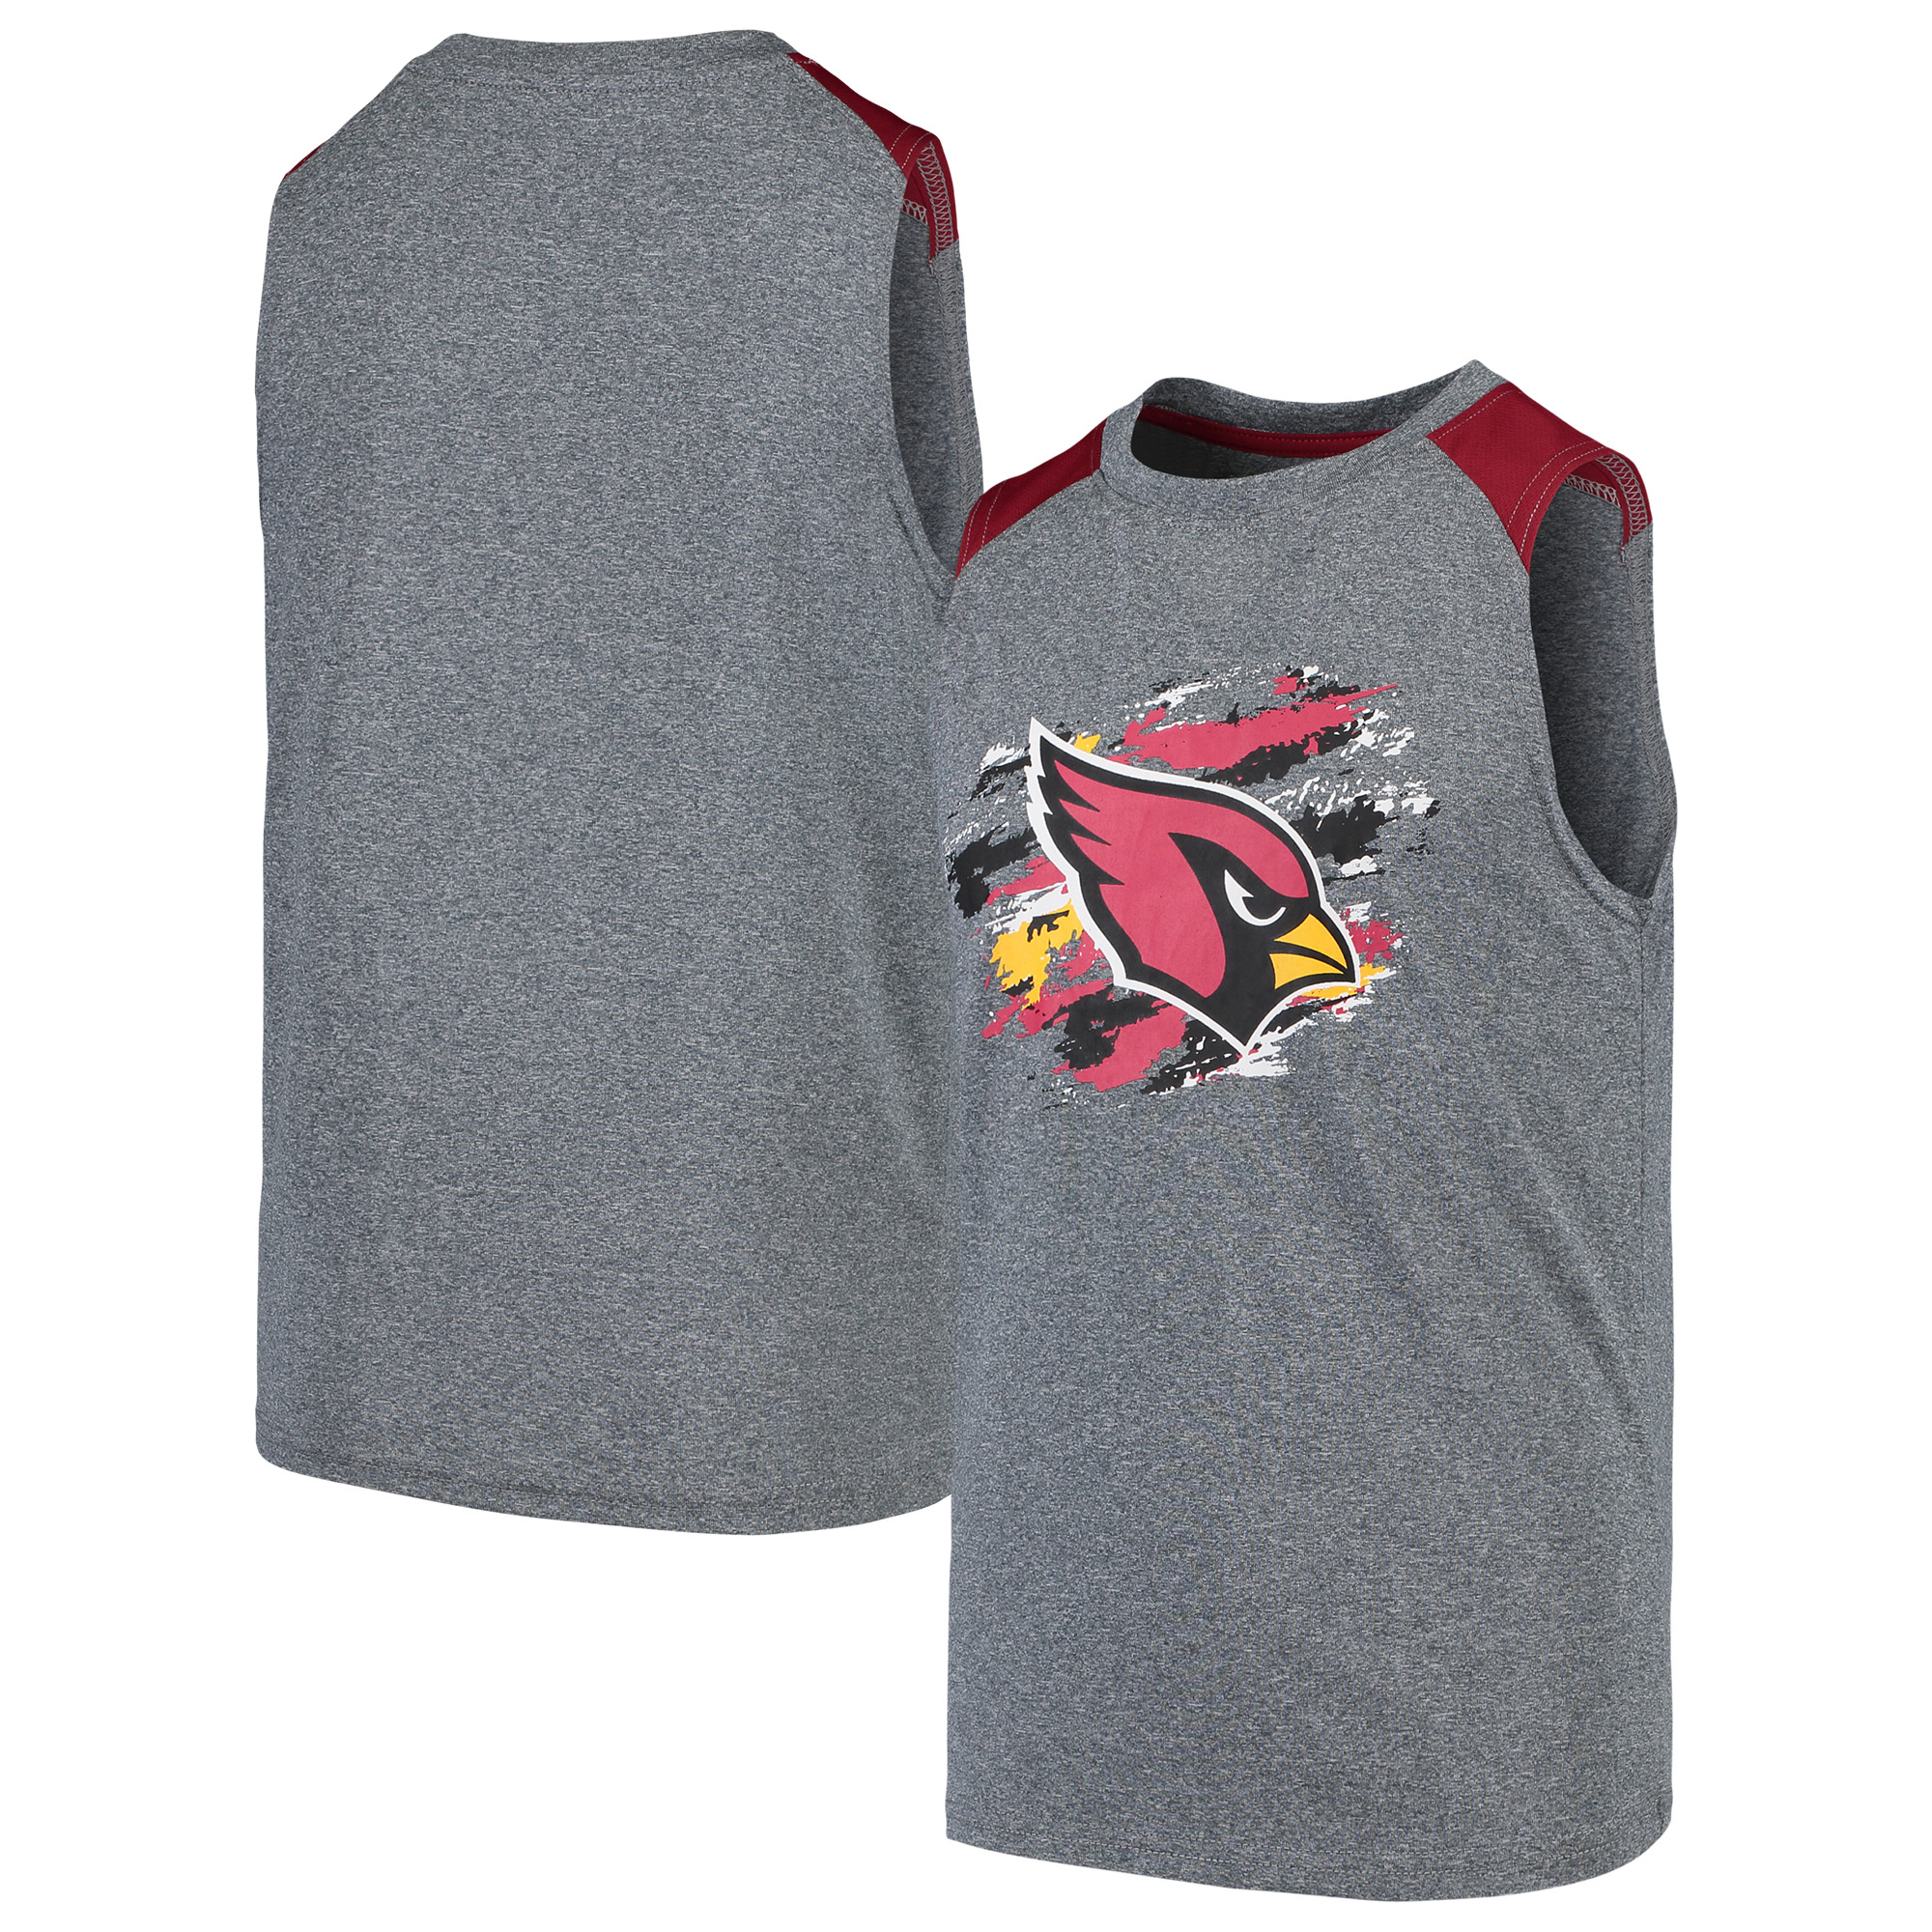 Arizona Cardinals NFL Pro Line by Fanatics Branded Youth True Colors Sleeveless T-Shirt - Heathered Gray